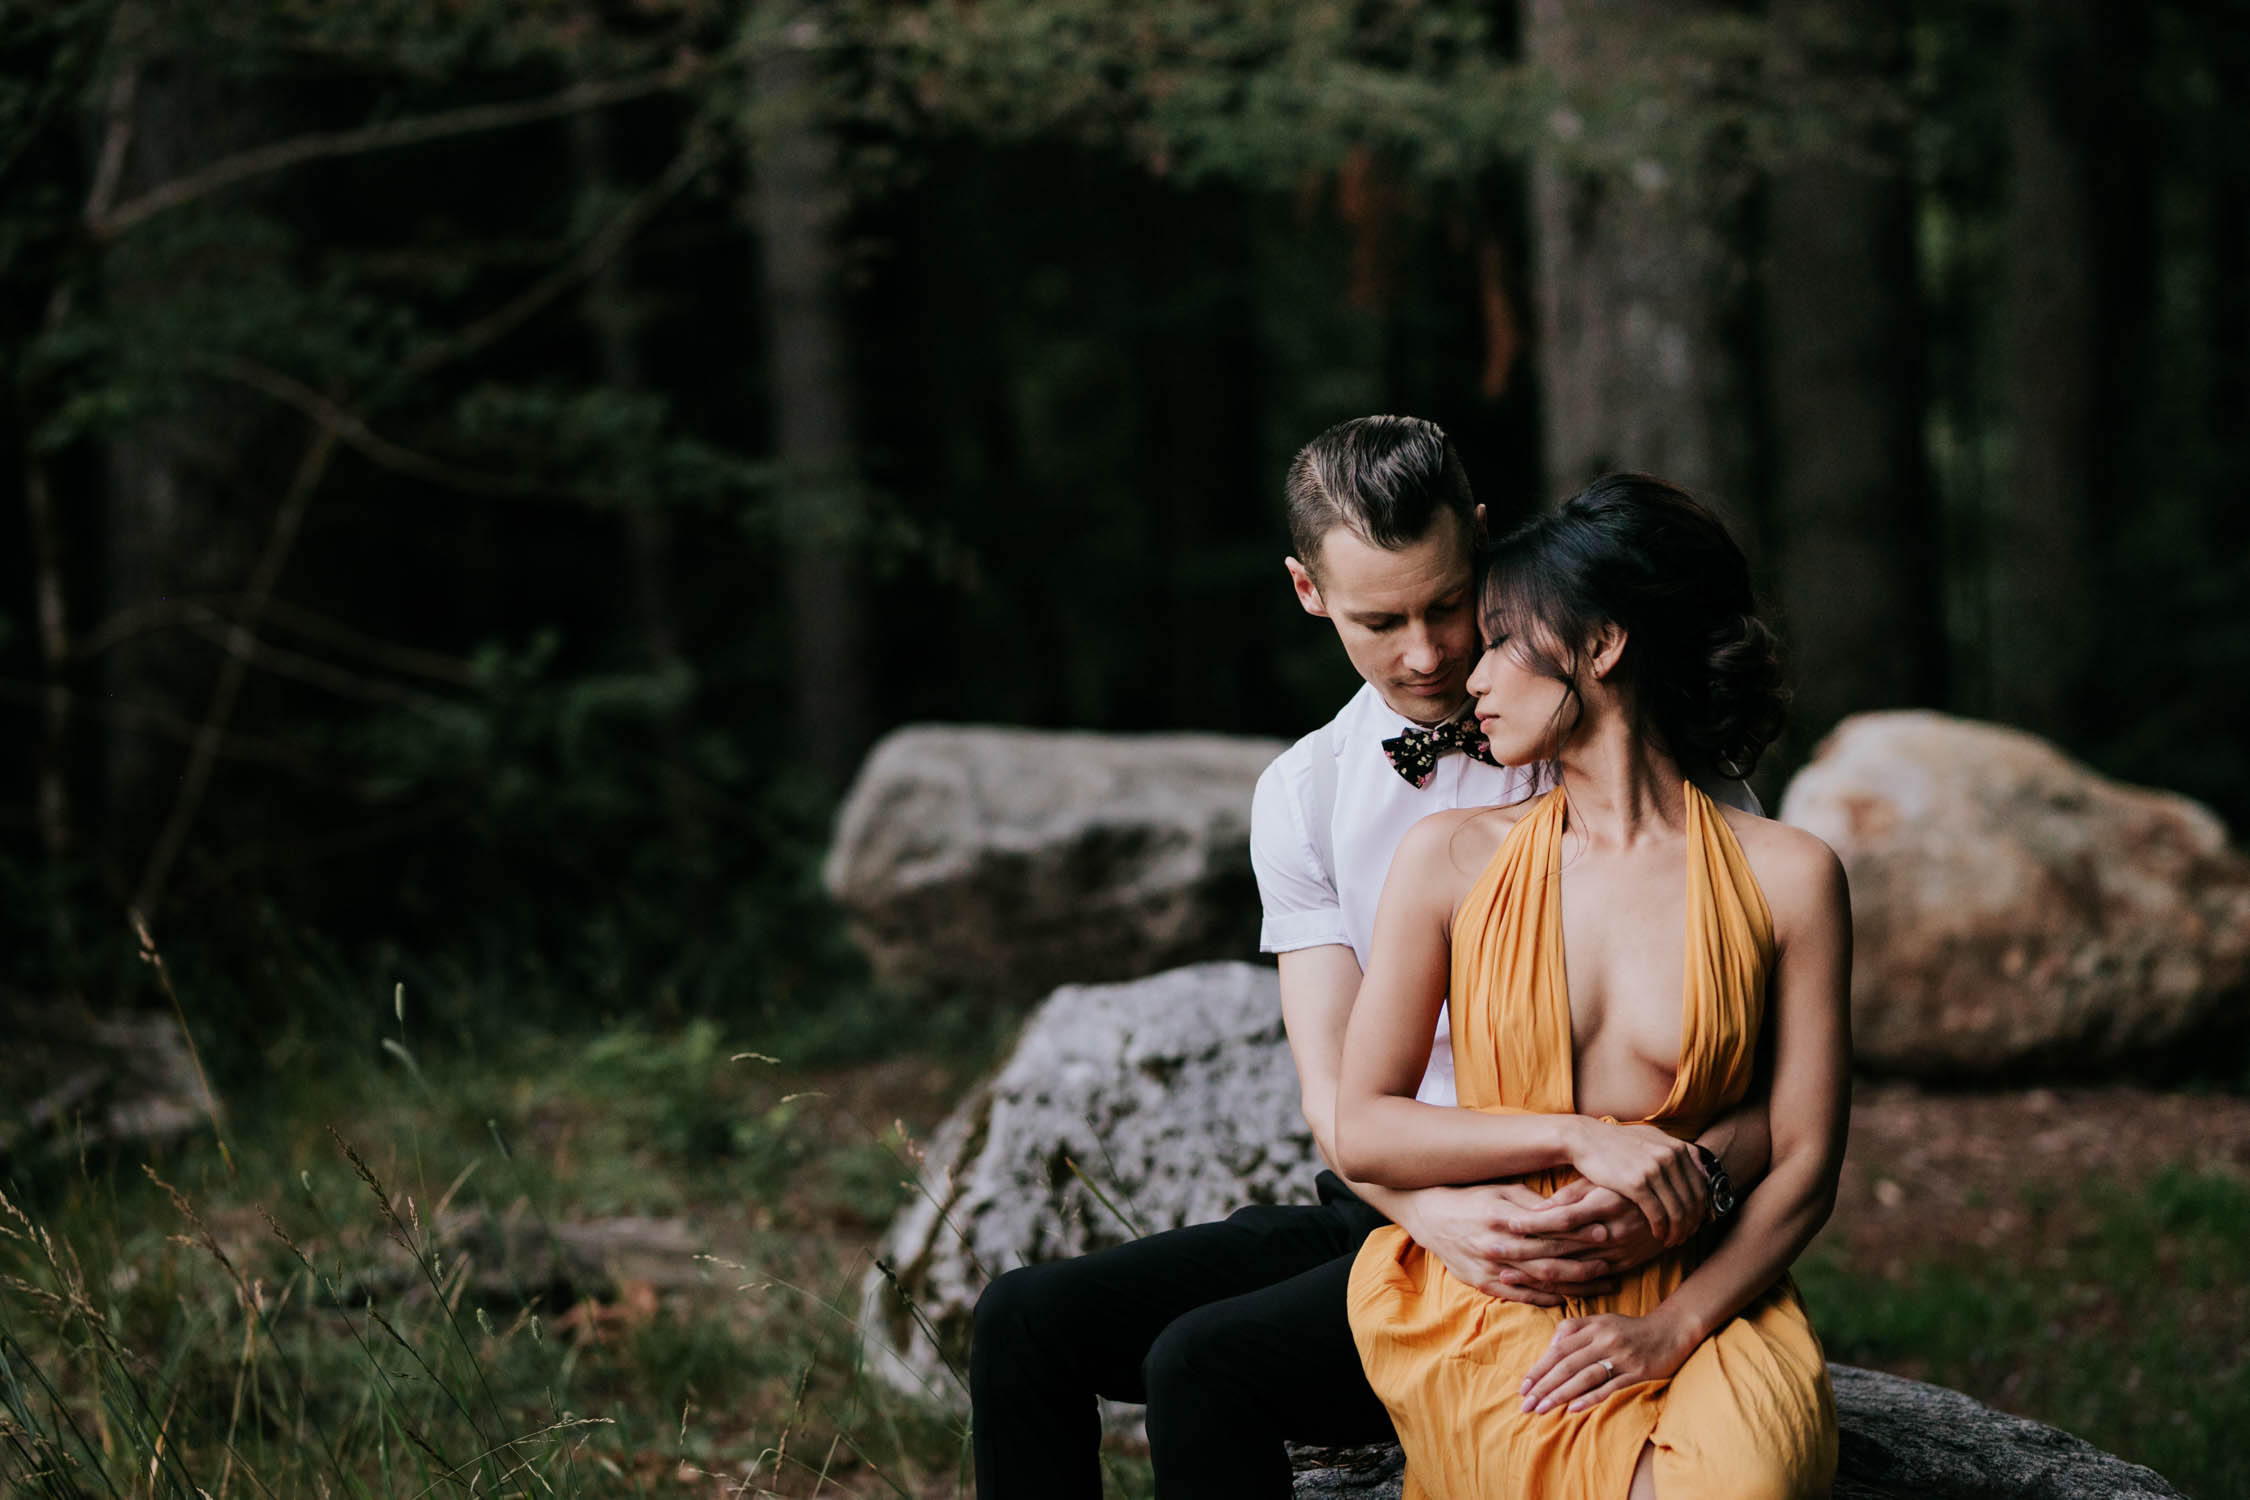 Couple sitting together on a rock in a forest. She is wearing a revealing yellow dress.